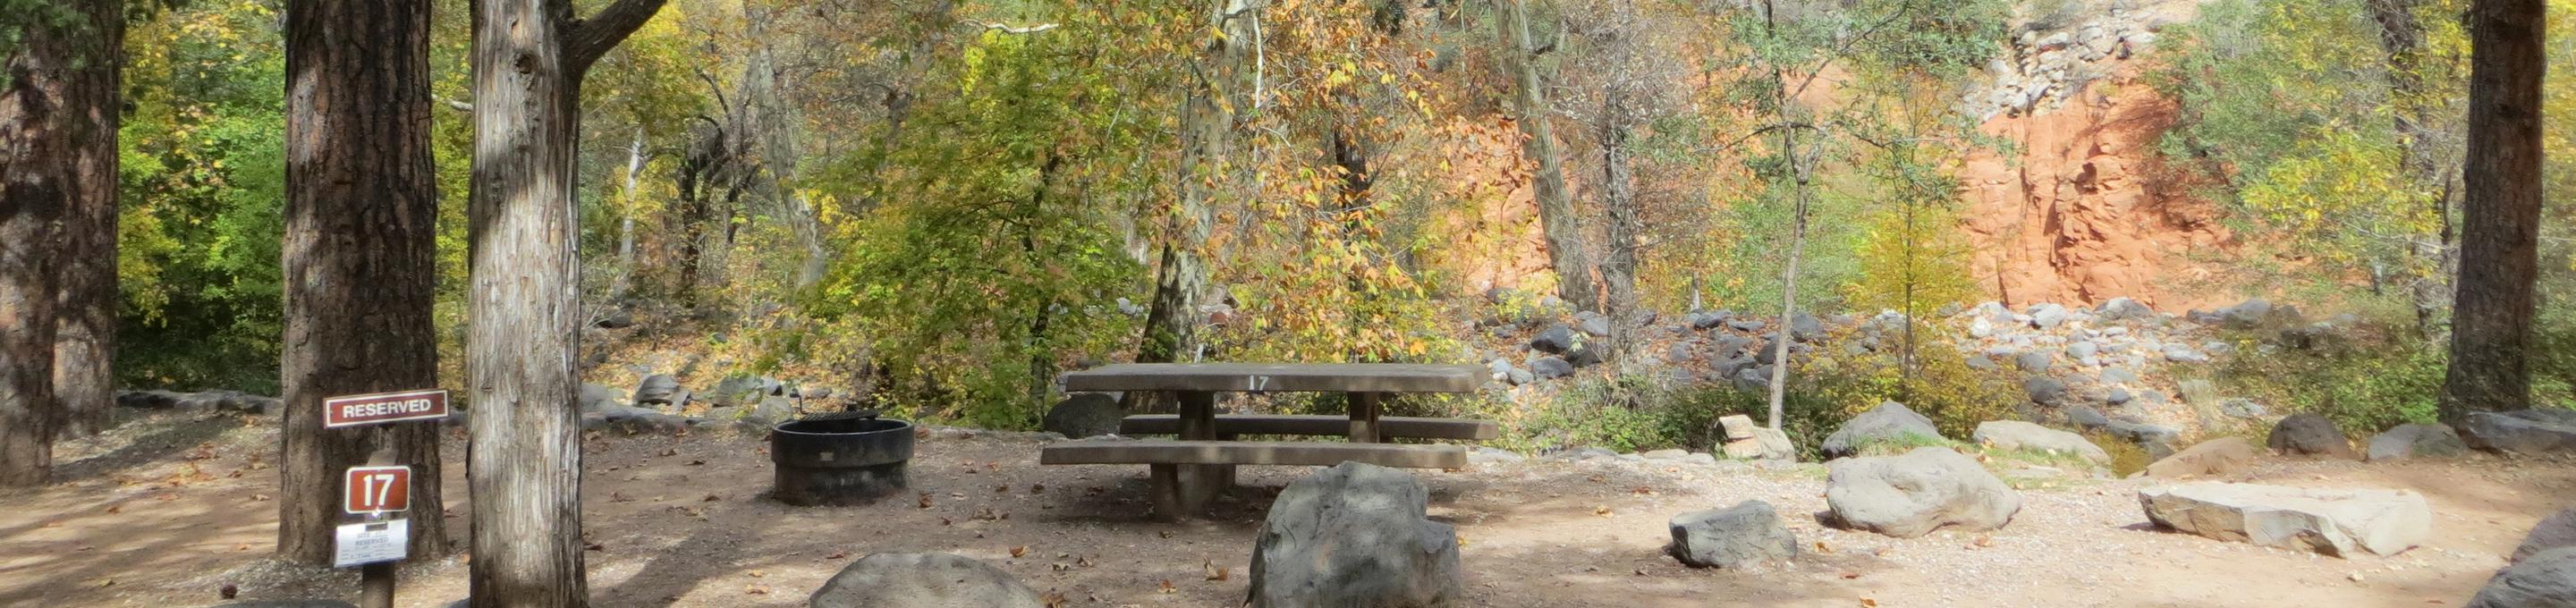 Manzanita Campground site #17 featuring the treed picnic area, camping space, and fire pit.